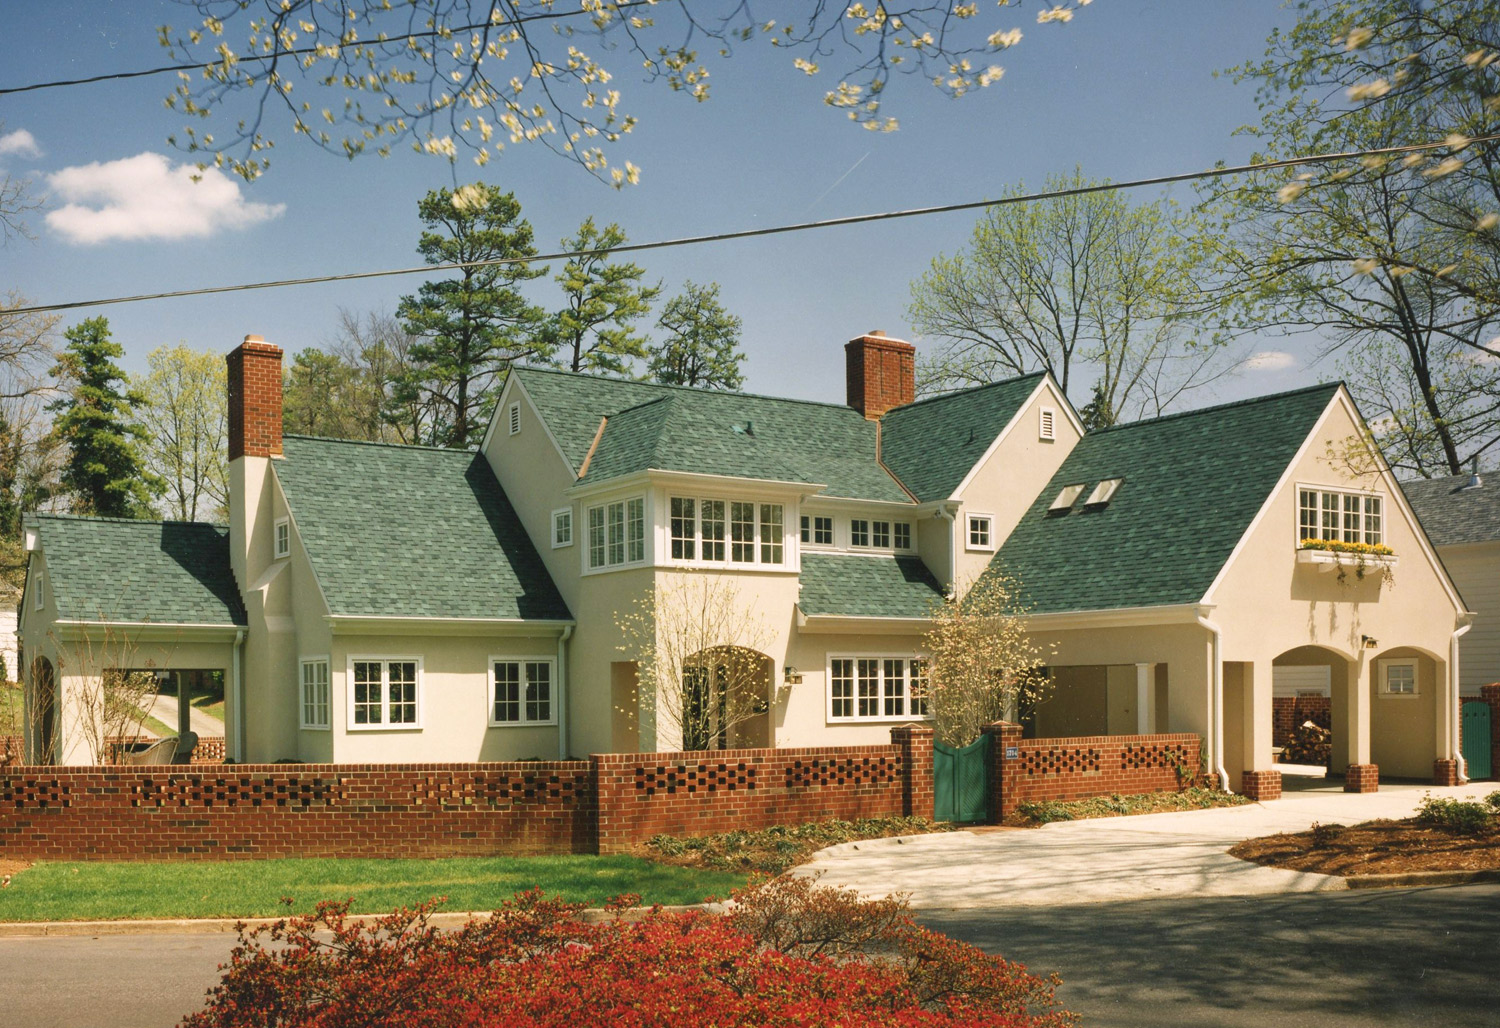 private-residence-greensboro-nc-01-a-plus-architects-frank-cheney-front-01-crop.jpg